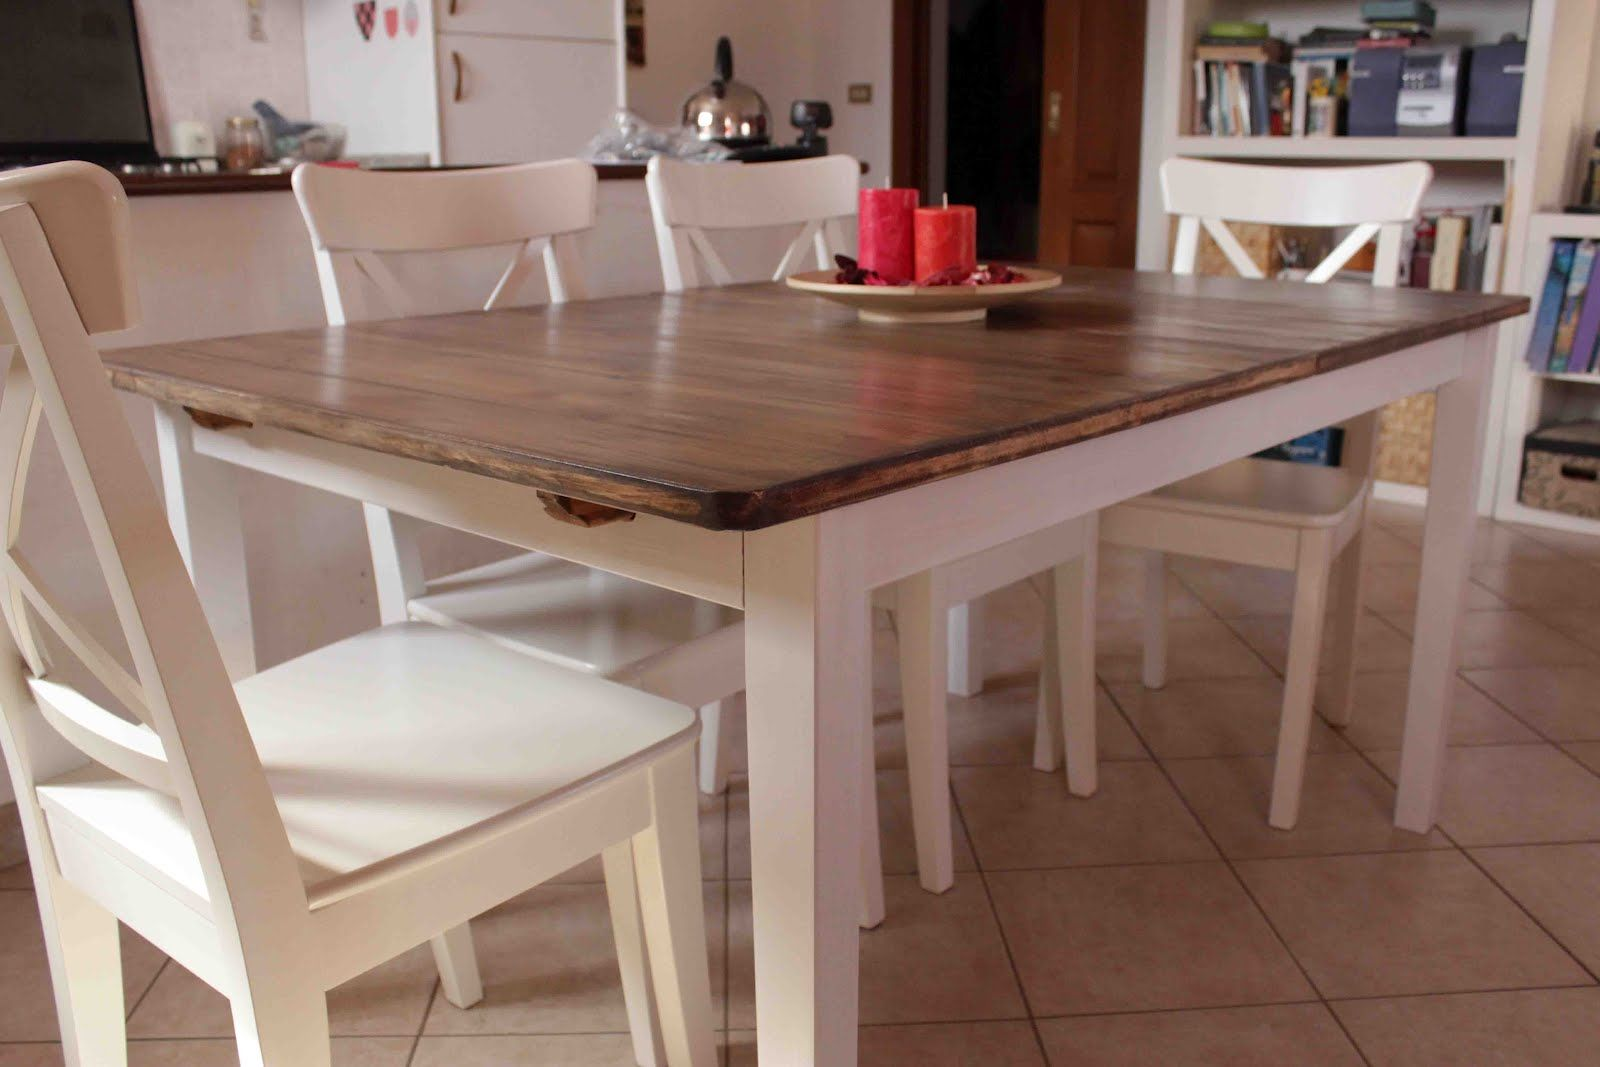 Make your own country kitchen table with a cheap ikea table this make your own country kitchen table with a cheap ikea table this website rocks workwithnaturefo